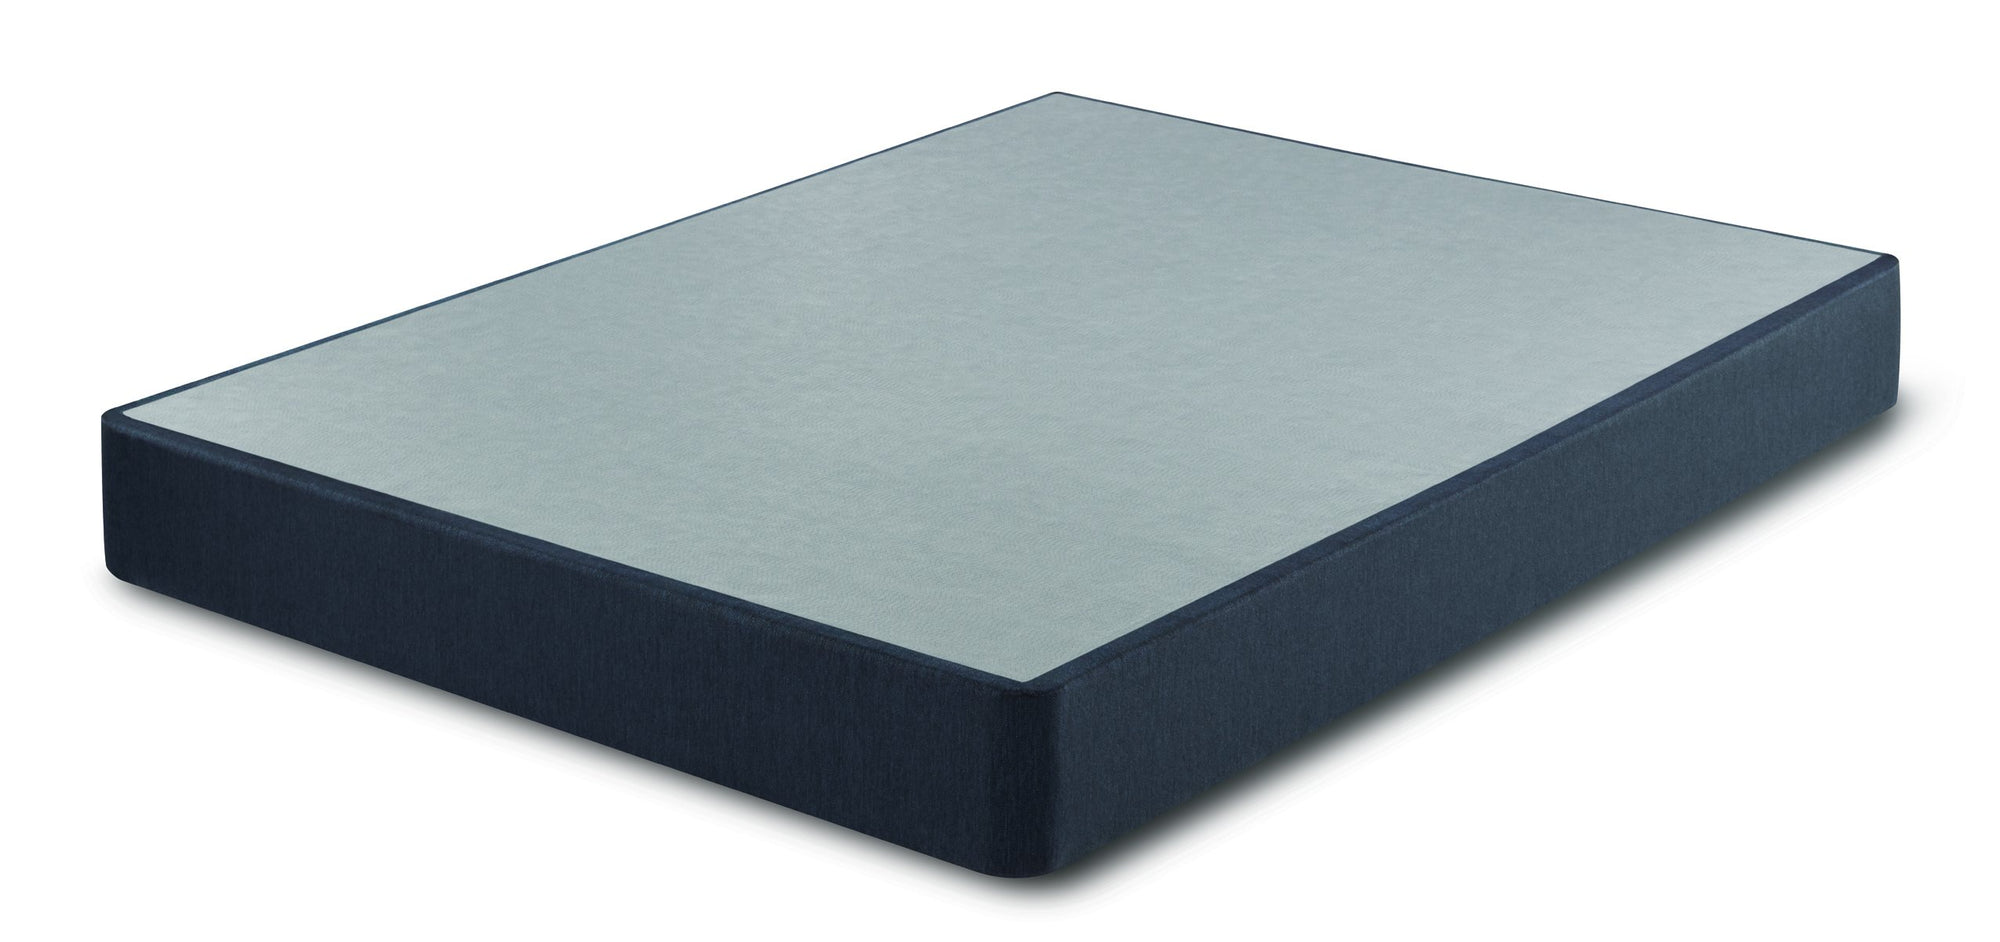 iComfort Flat Foundation Bed Base Serta